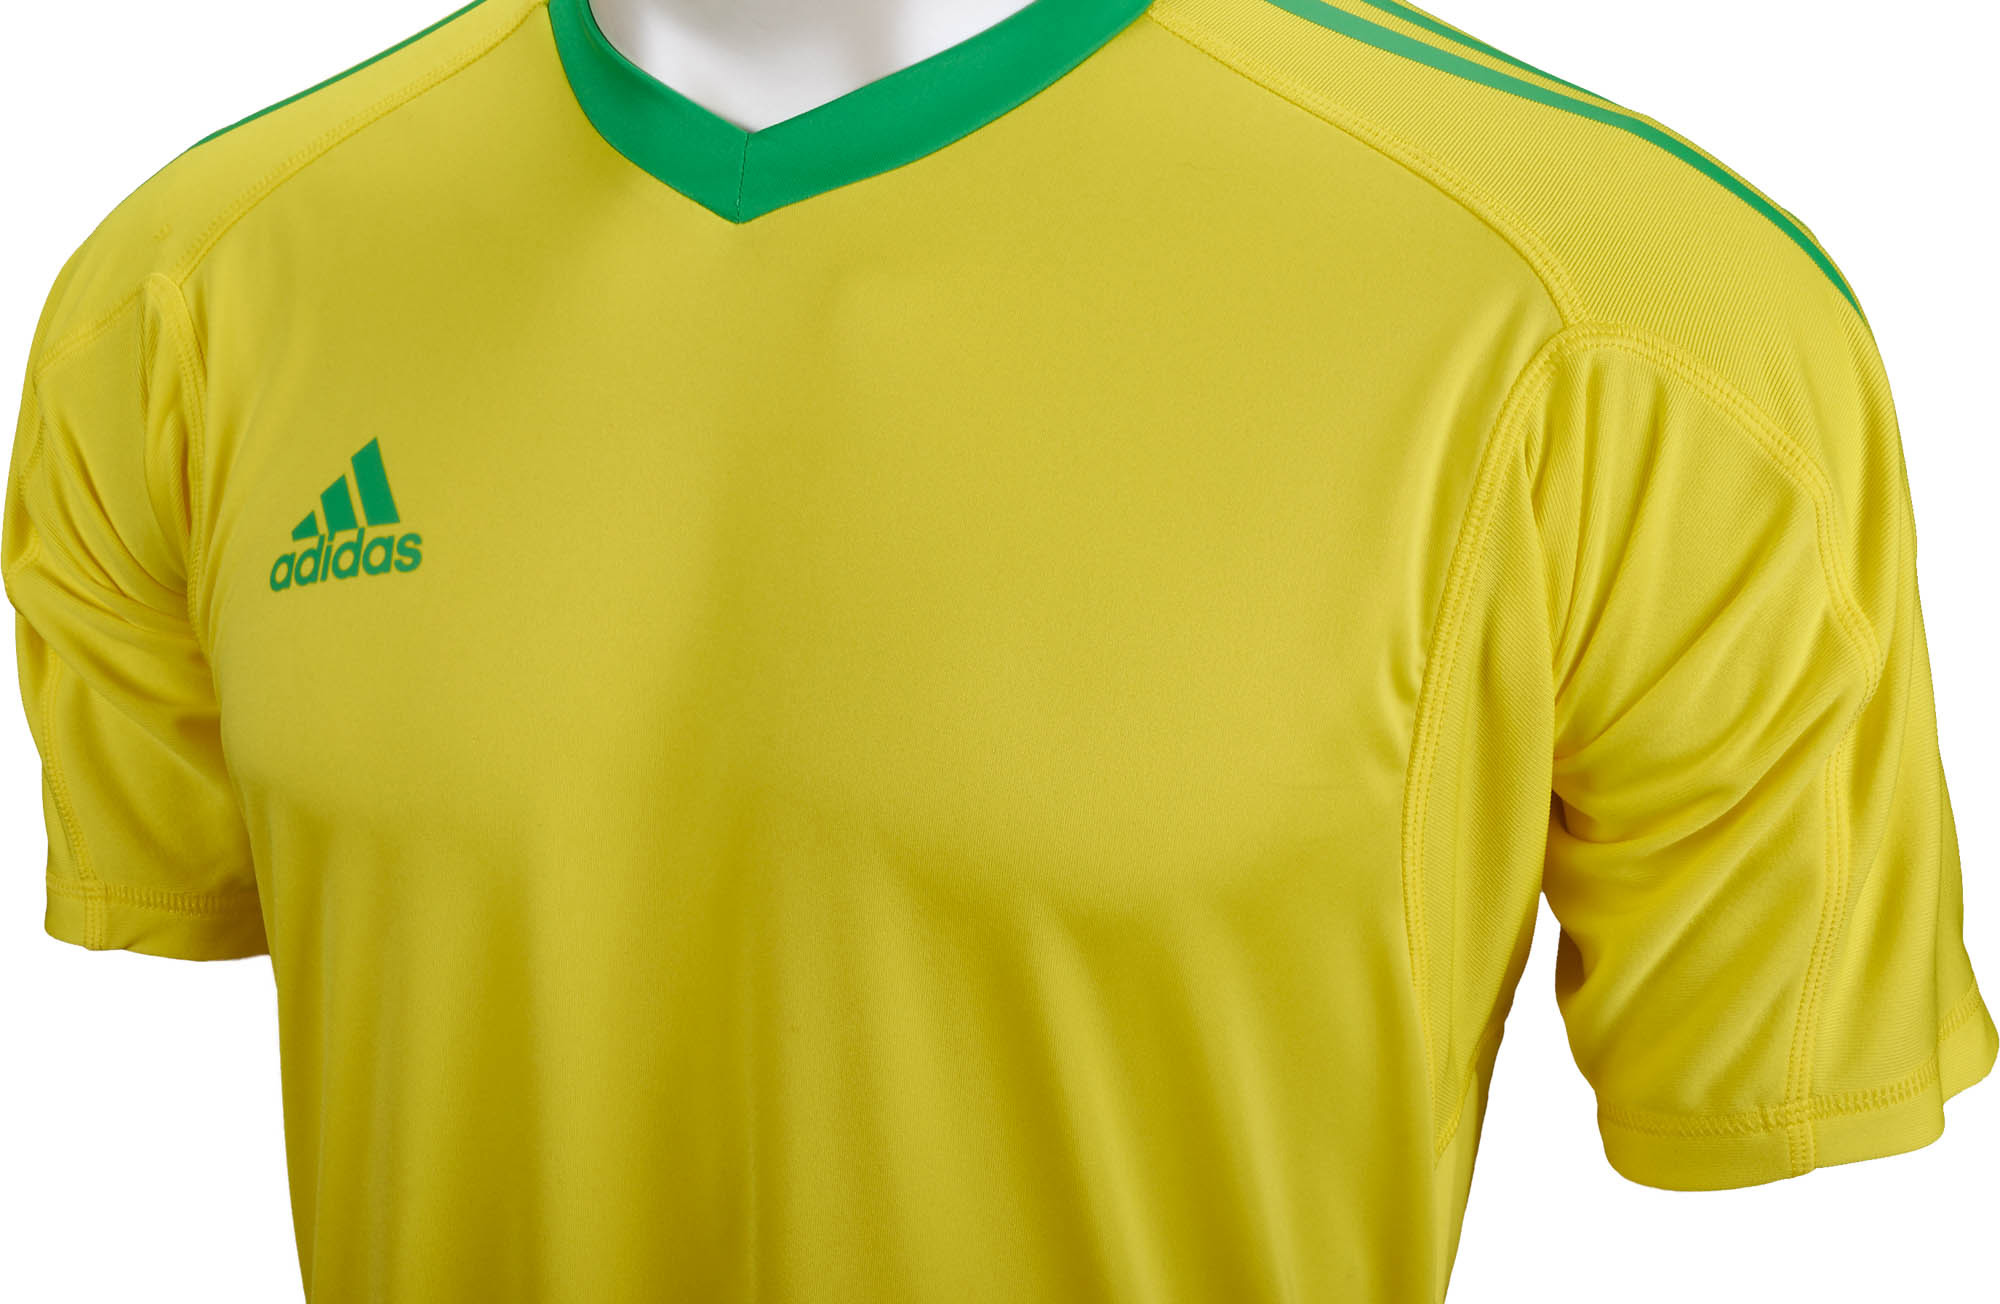 f231bd633f2a0 adidas Revigo 17 Short-Sleeve Goalkeeper Jersey- Yellow